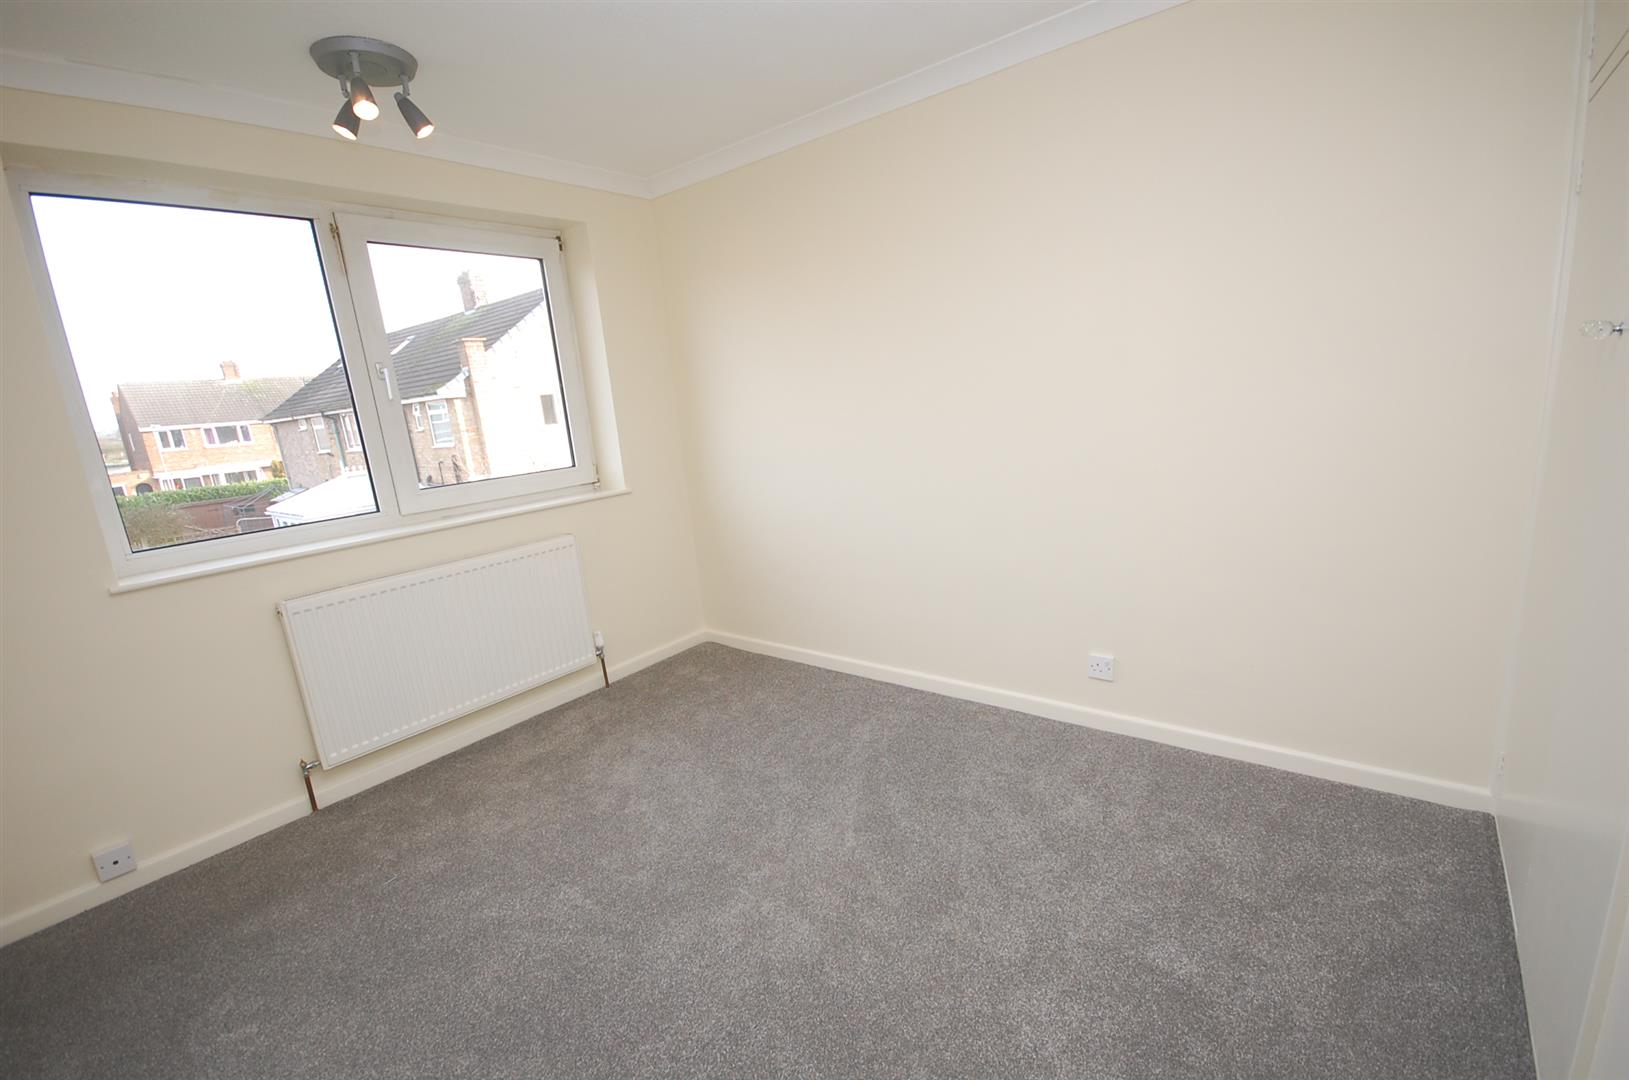 3 bedroom Semi-Detached House for sale in Nottingham